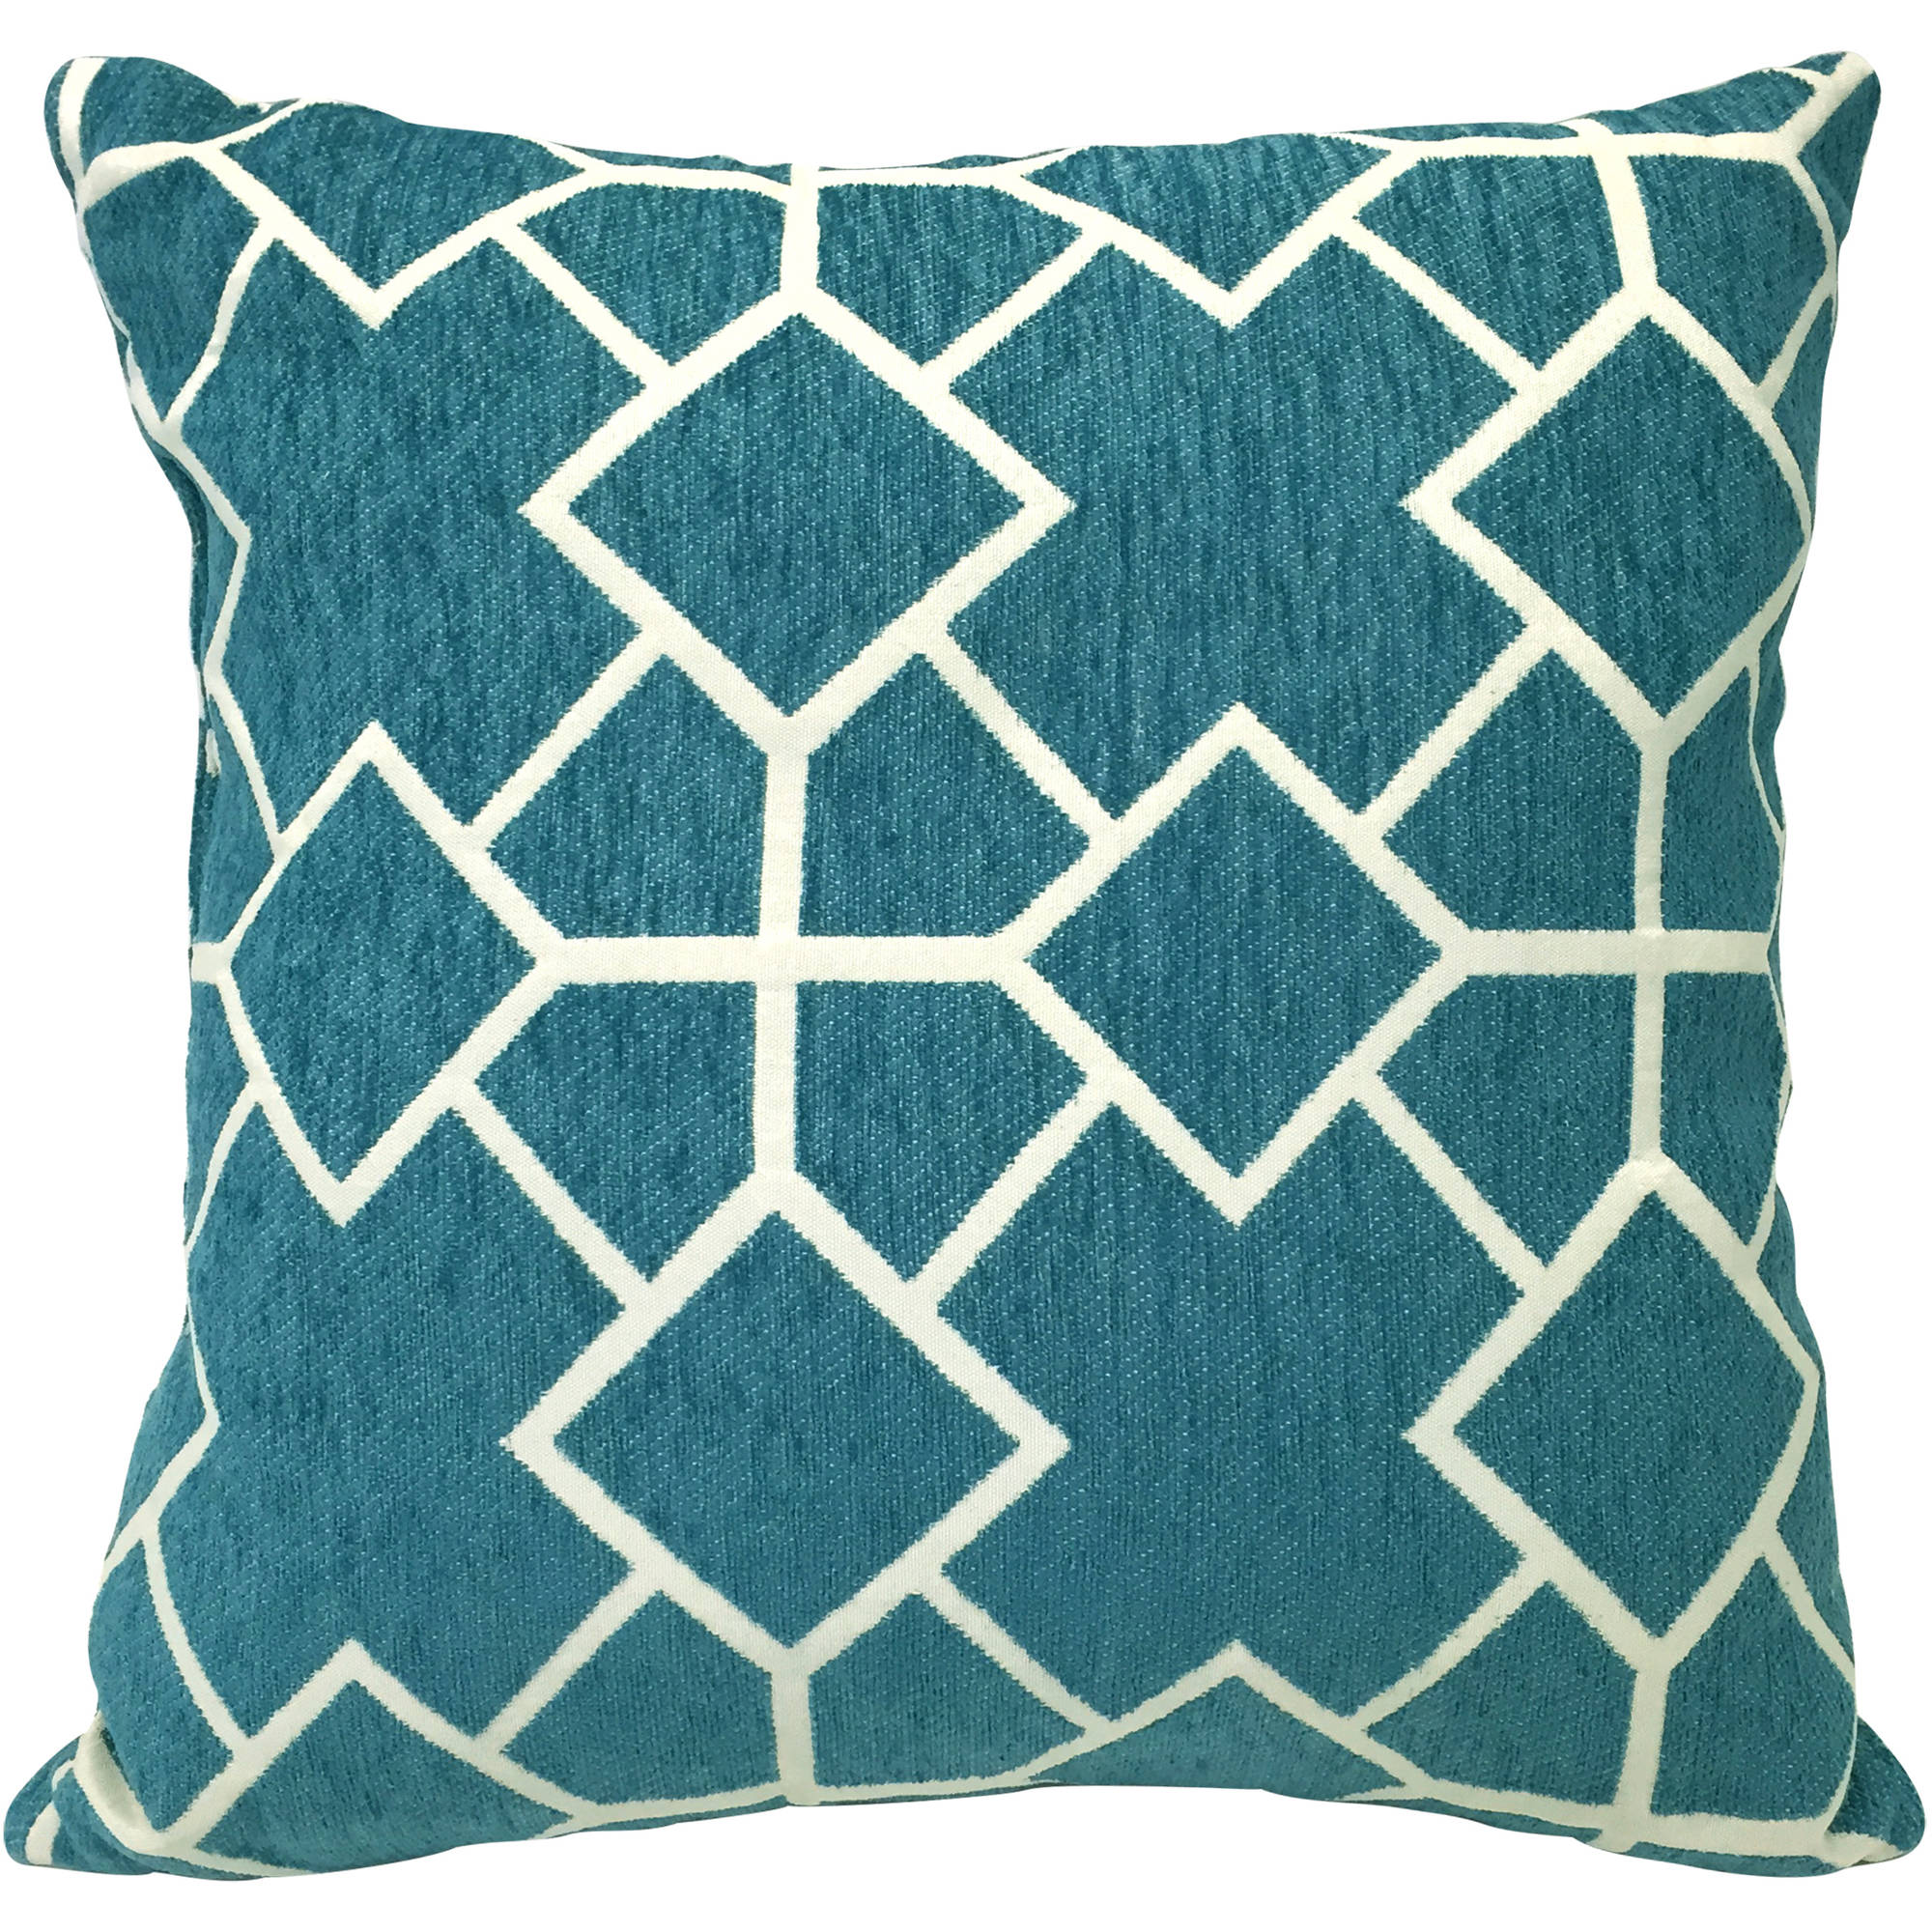 teal multi accent decorative seashore coastal pillows p x word beaded v beach pillow cool